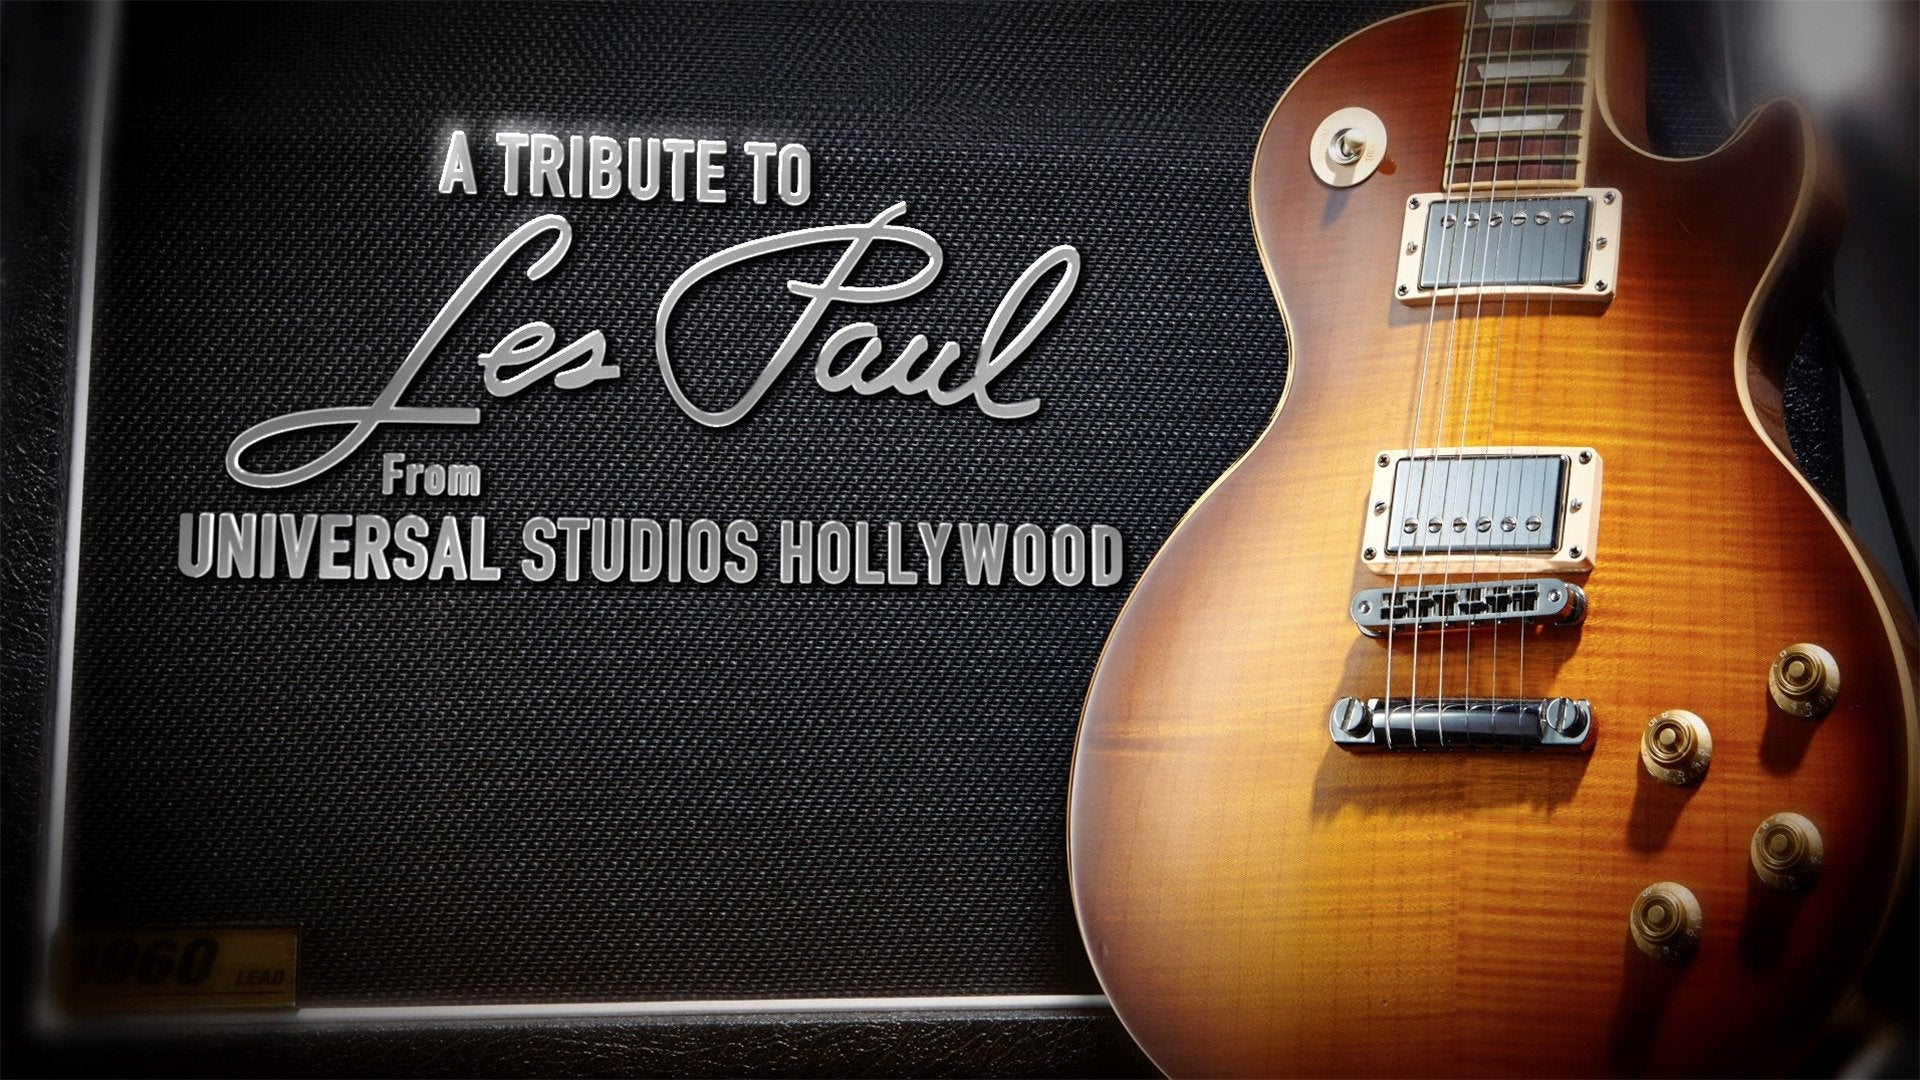 A Tribute to Les Paul - From Universal Studios Hollywood